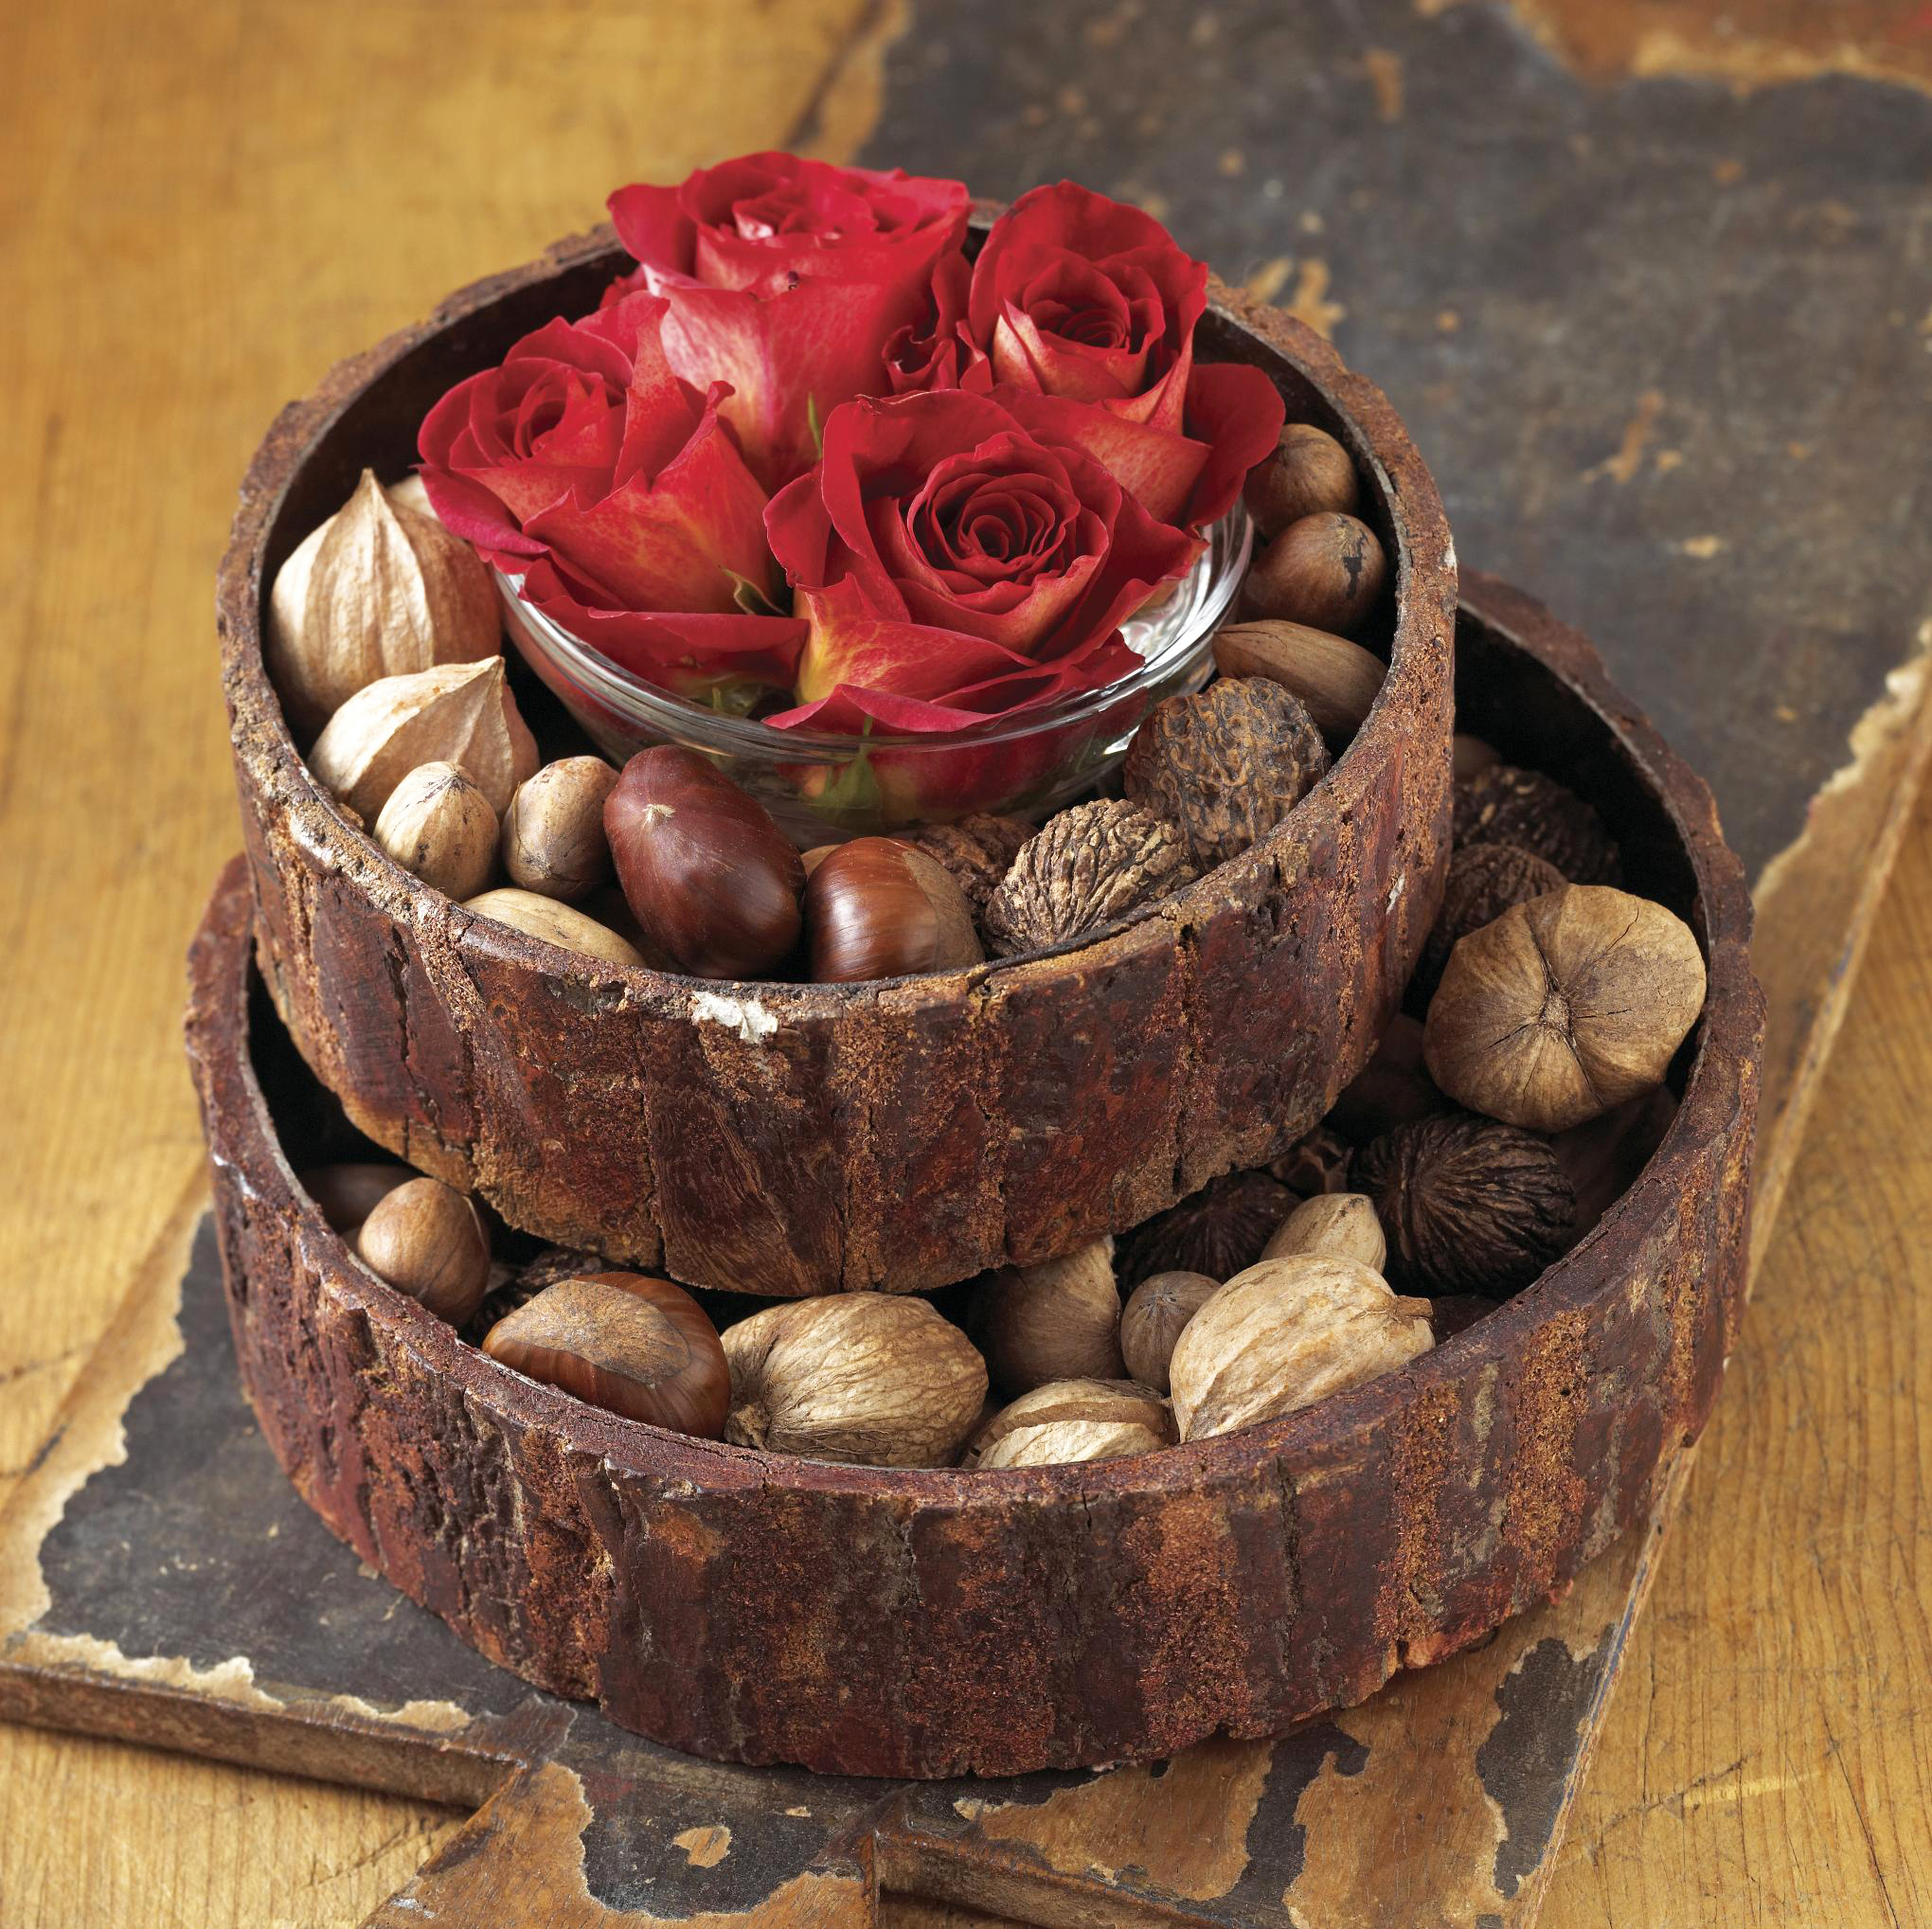 Nuts and roses